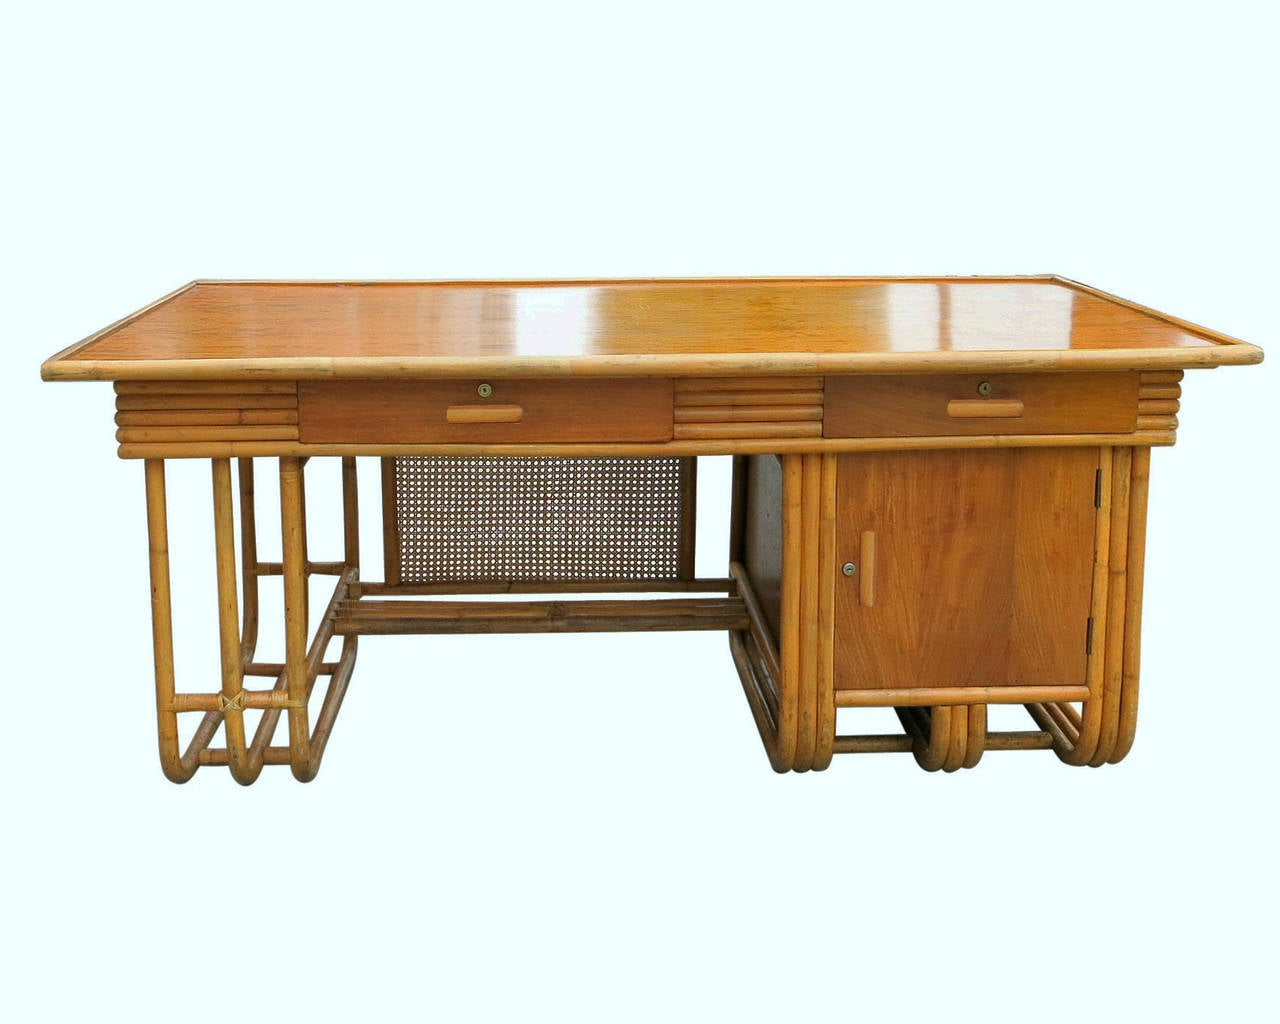 A large Jean Royère style streamline rattan executive desk with Filipino mahogany finished sections: Drawer fronts, side panels and top. Also has an optional glass top. The desk features two center pull drawers and a side cabinet with locks on